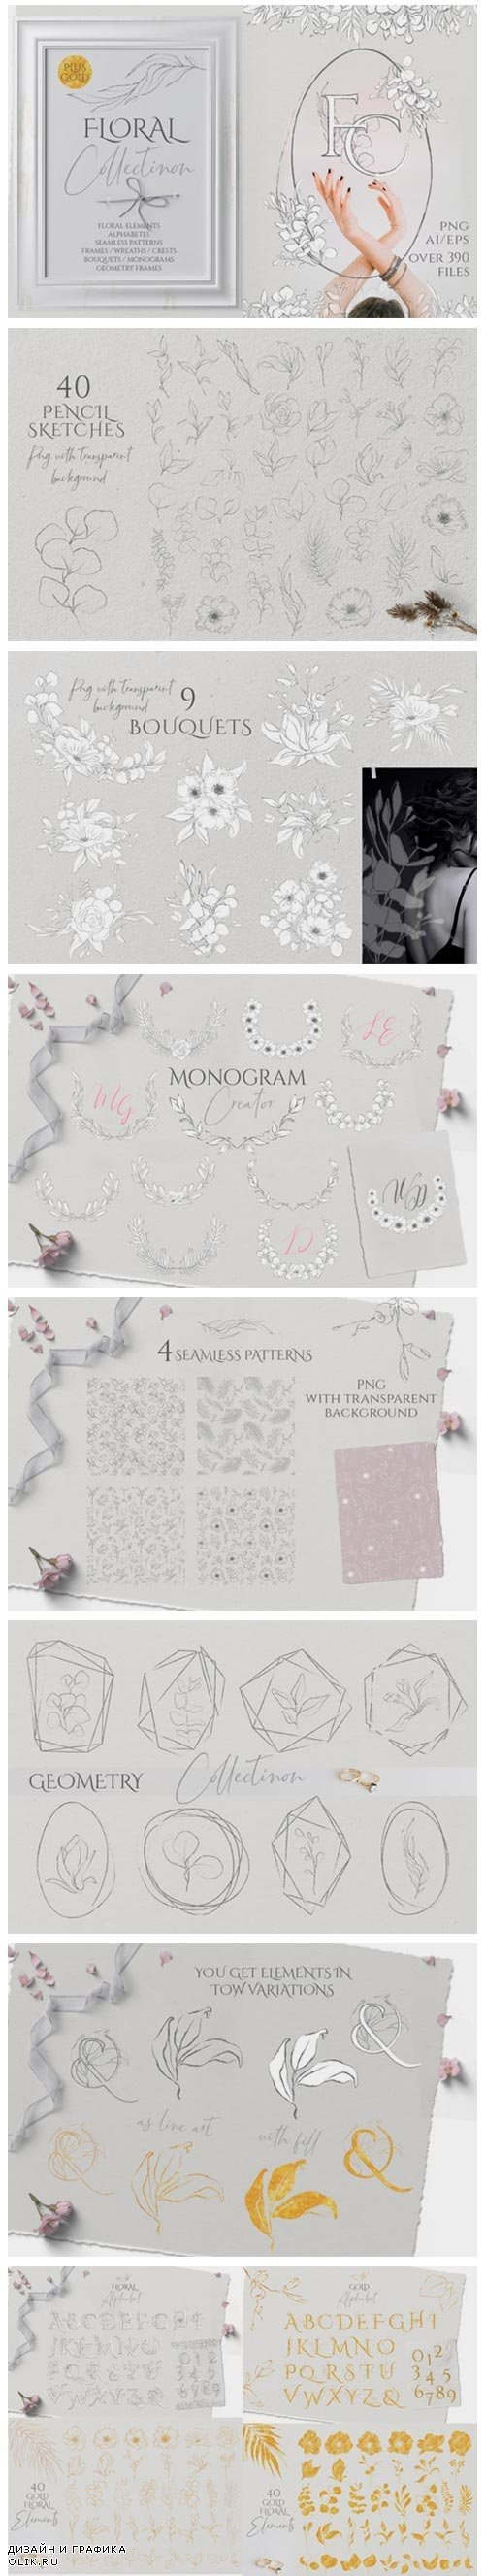 Floral Sketch Collection - 4522595